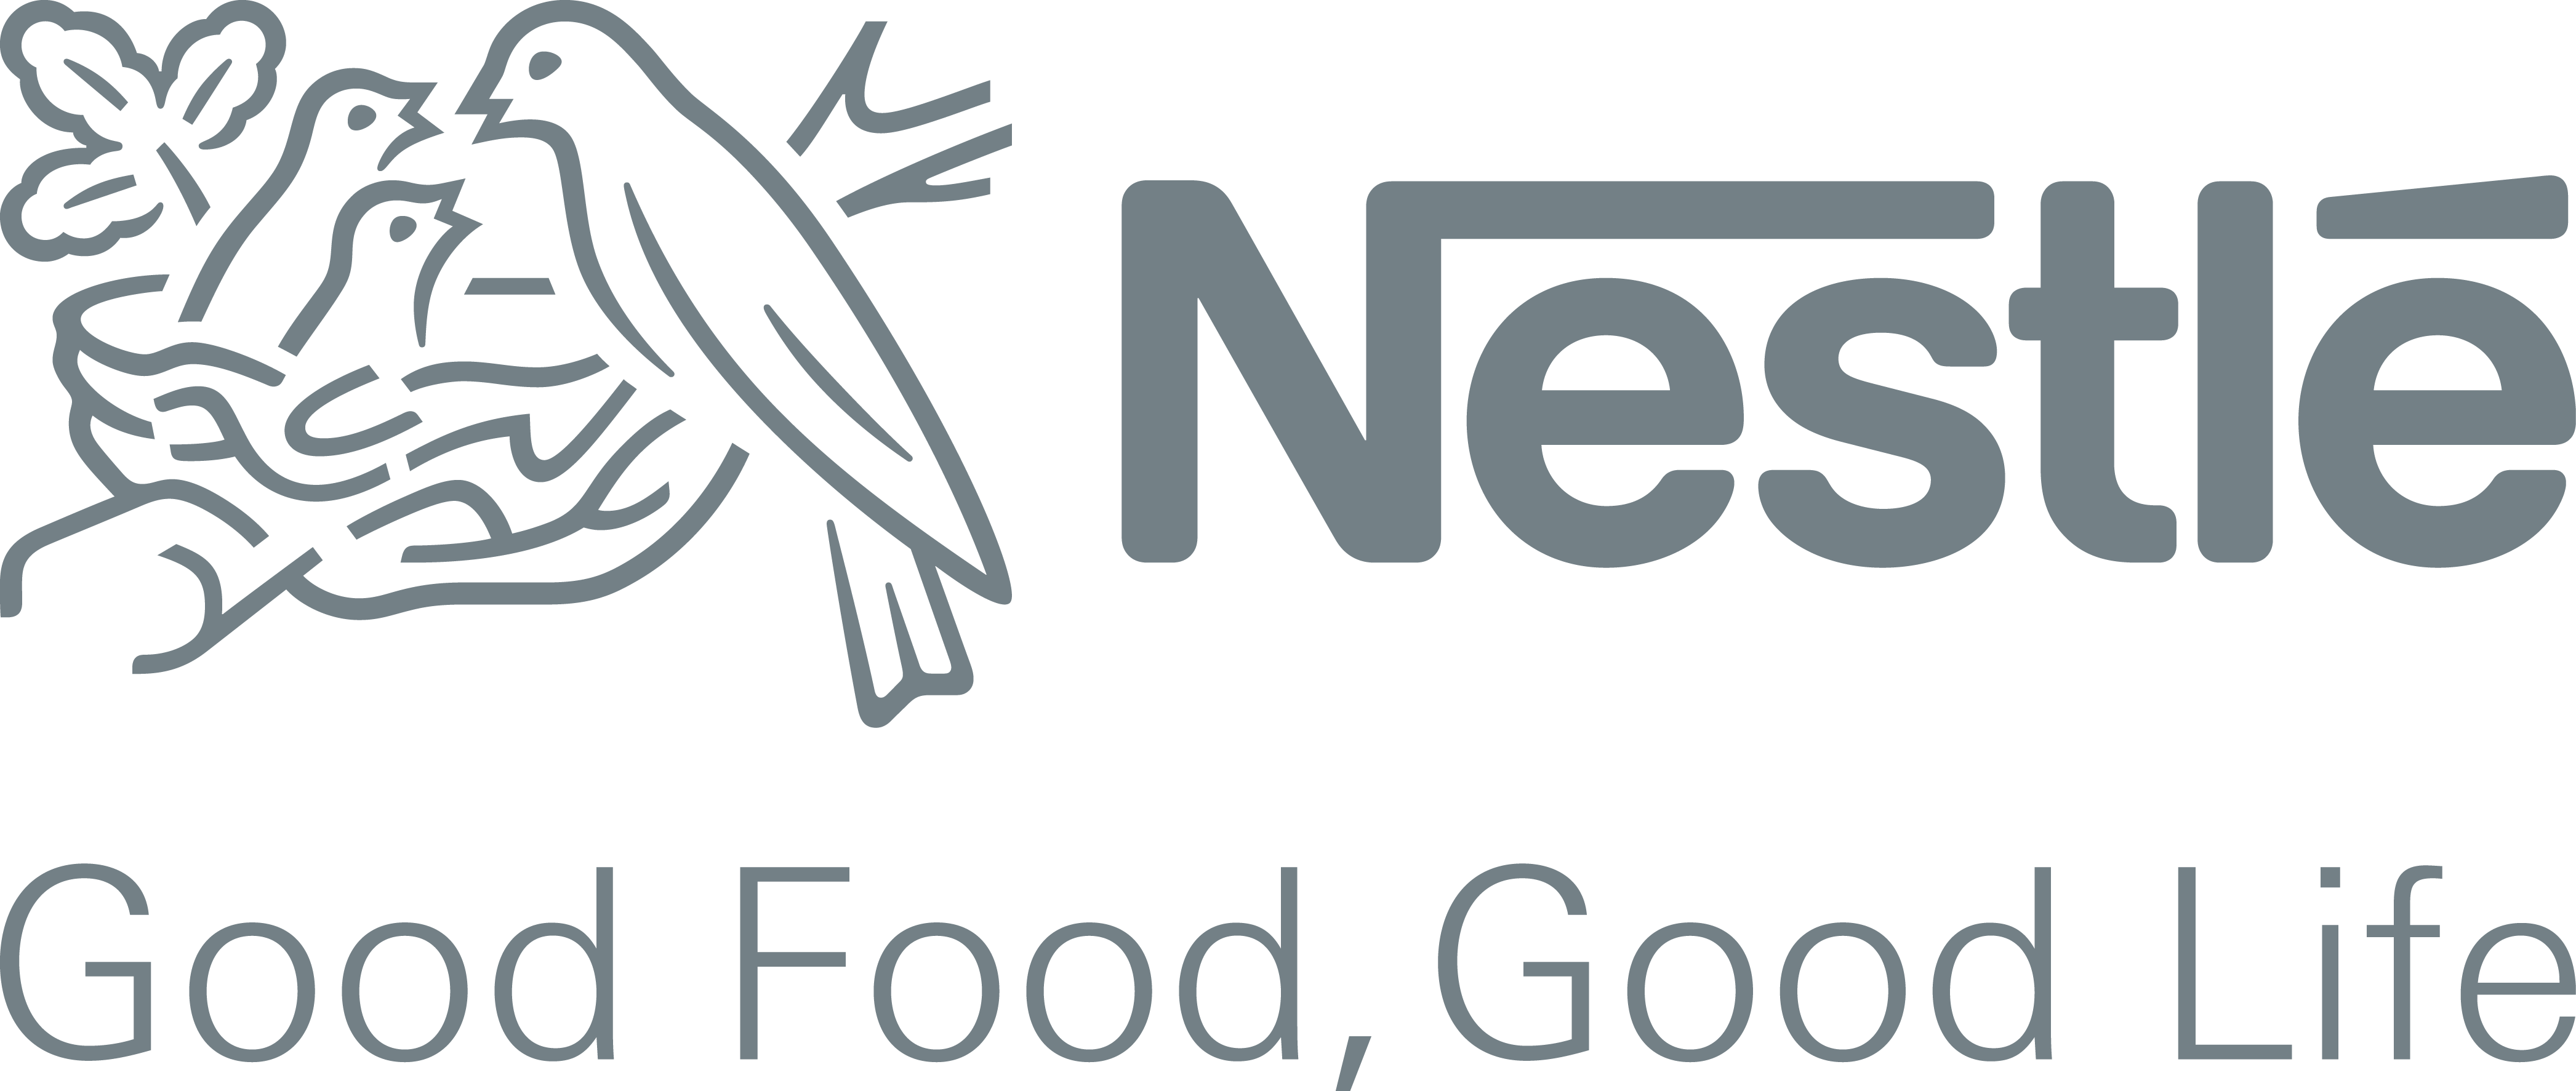 2015 Nestle Corporate Hor. GFGL P430